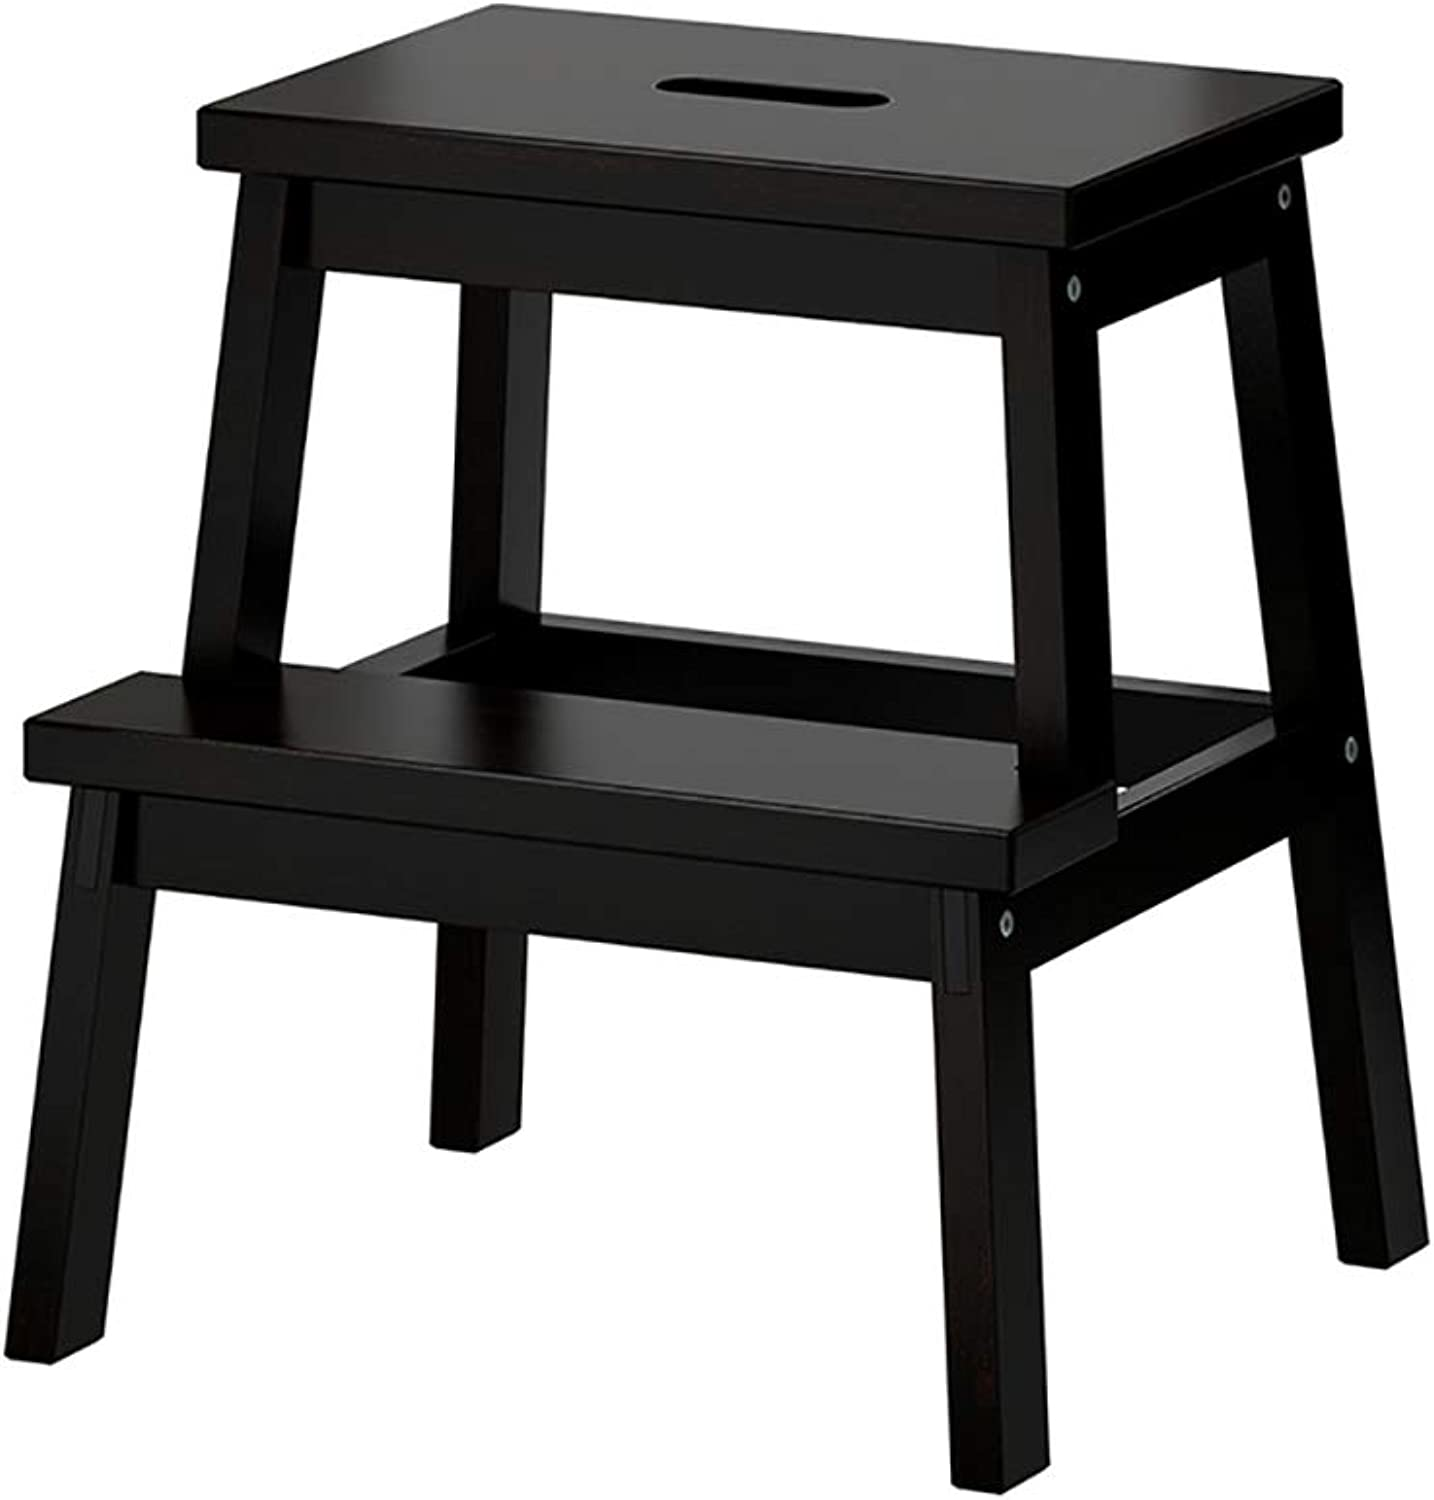 YJLGRYF Ladder Stool 2 Tier Solid Wood Step Stool,Small Stool, shoes Bench, Home Bench Step Stool (color   Black)